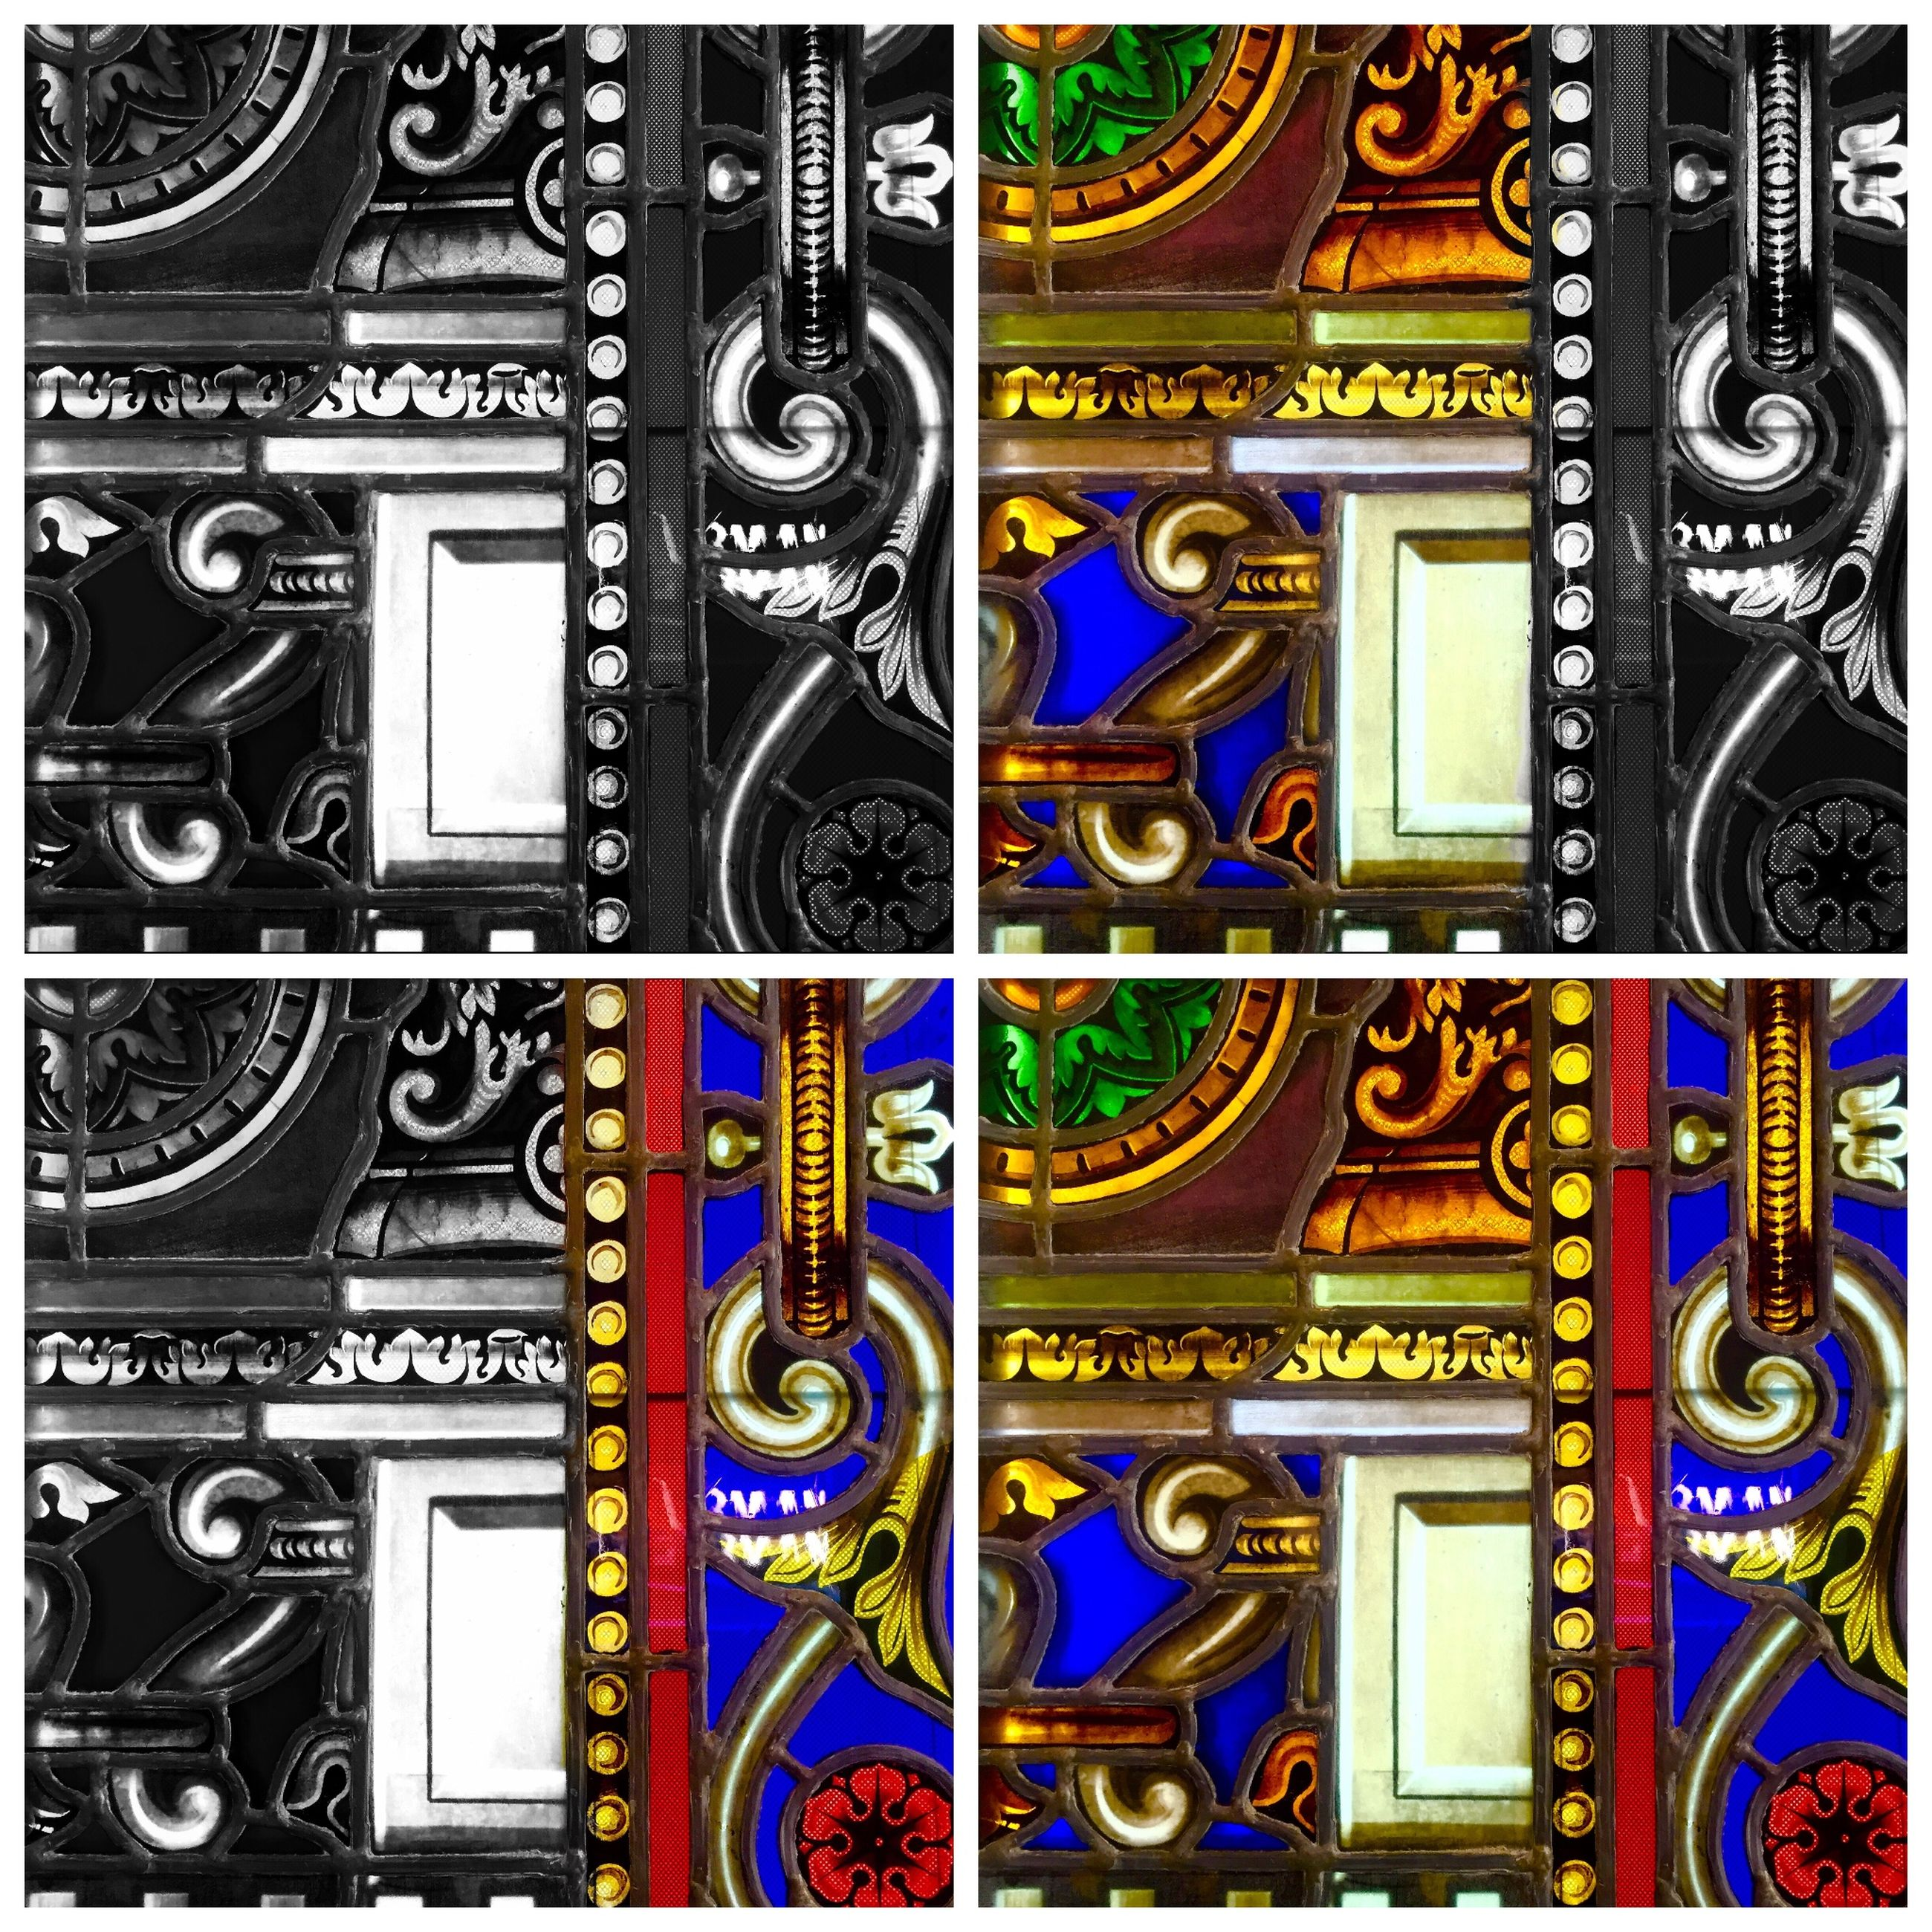 transfer print, architecture, building exterior, art and craft, built structure, design, ornate, art, auto post production filter, creativity, pattern, multi colored, religion, no people, carving - craft product, low angle view, backgrounds, blue, full frame, day